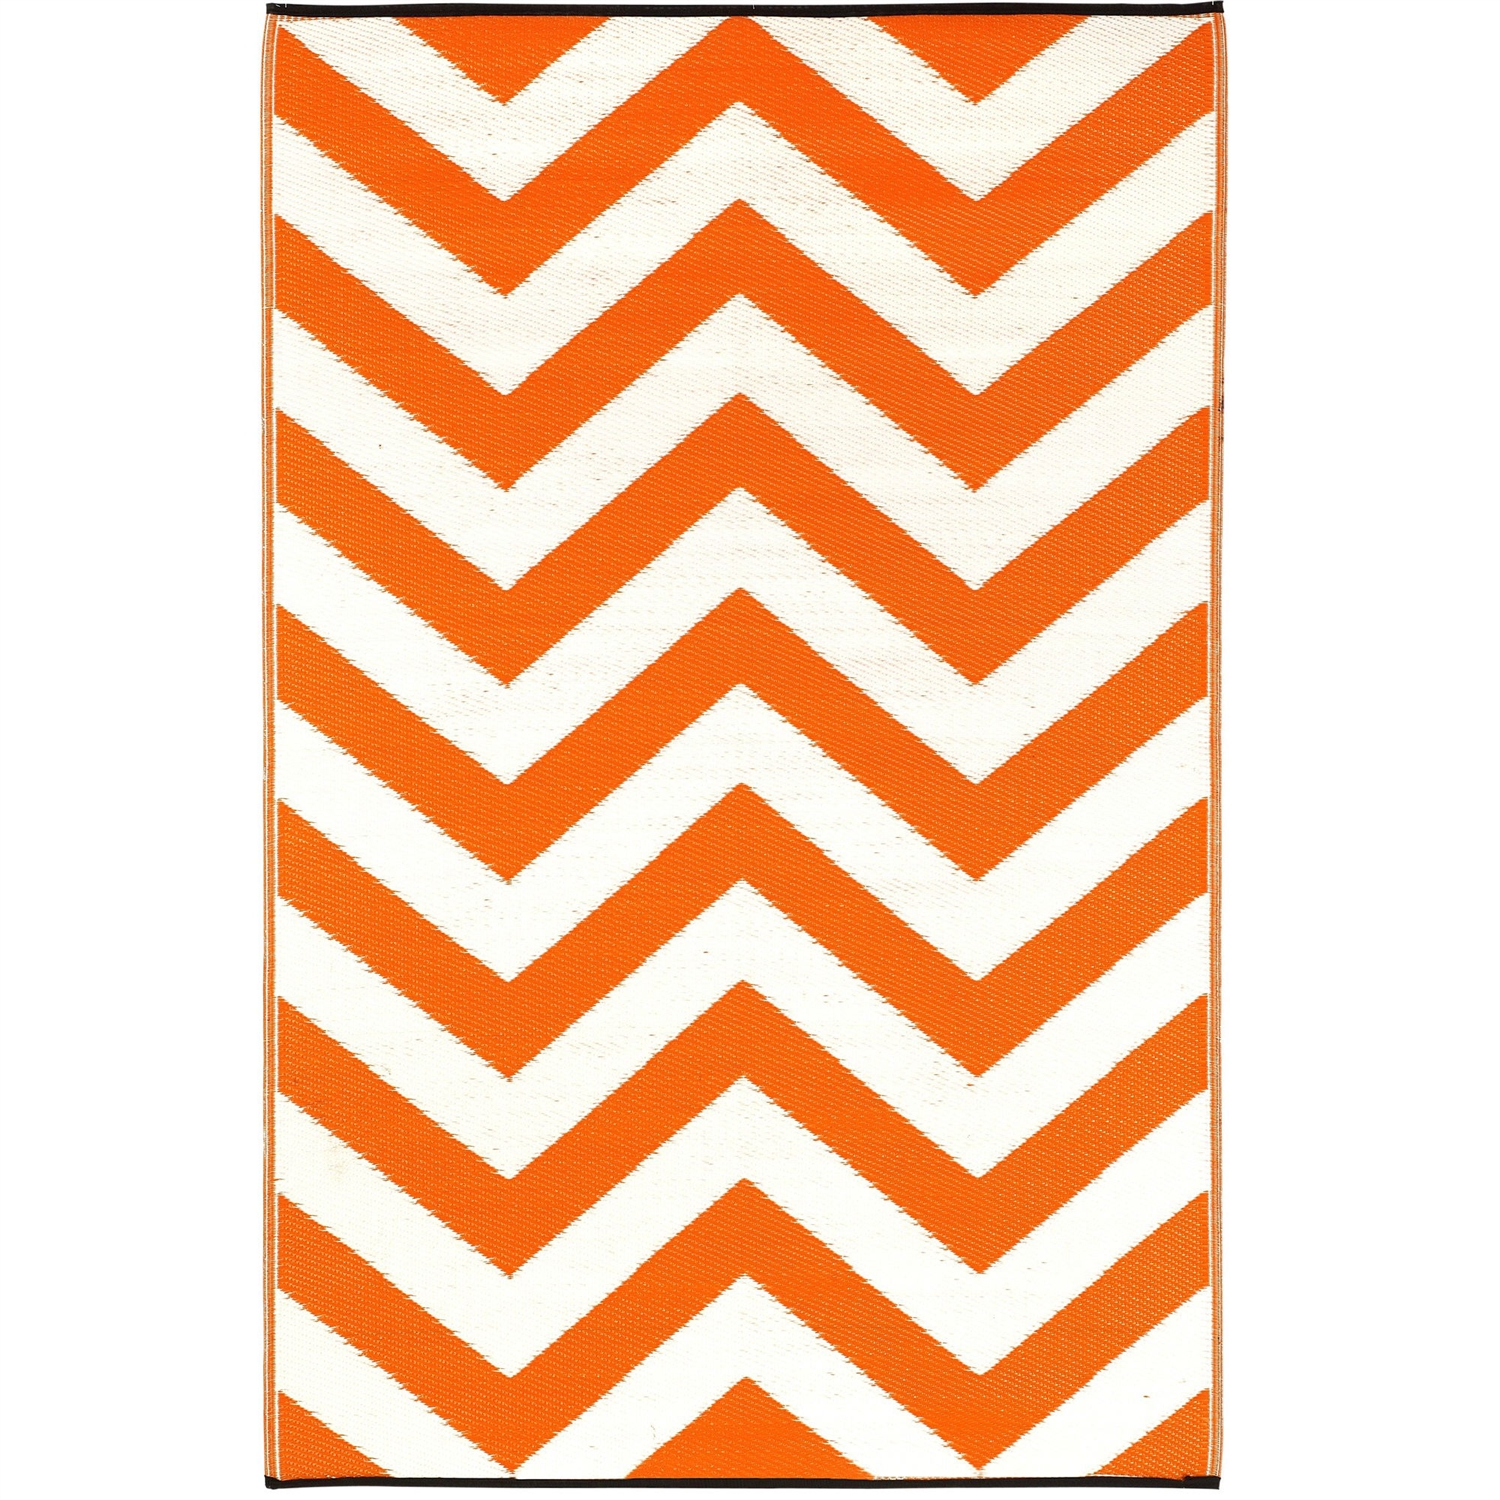 5' x 8' Indoor / Outdoor Area Rug with Orange White Chevron Pattern, LOPR85123 :  This 5' x 8' Indoor / Outdoor Area Rug with Orange White Chevron Pattern is made following the fair trade principles. Fab Rugs add a touch of elegance to your home décor. They are made using premium quality recycled plastic straws which are tightly woven together to offer strength, softness and beauty. Being plastic, moisture will have no effect on the mat and it will not attract mildew. Reversible; Lightweight; Comes with Eco-friendly jute bag; Reversible: Yes; Eco-Friendly: Yes; Country of Manufacture: India.